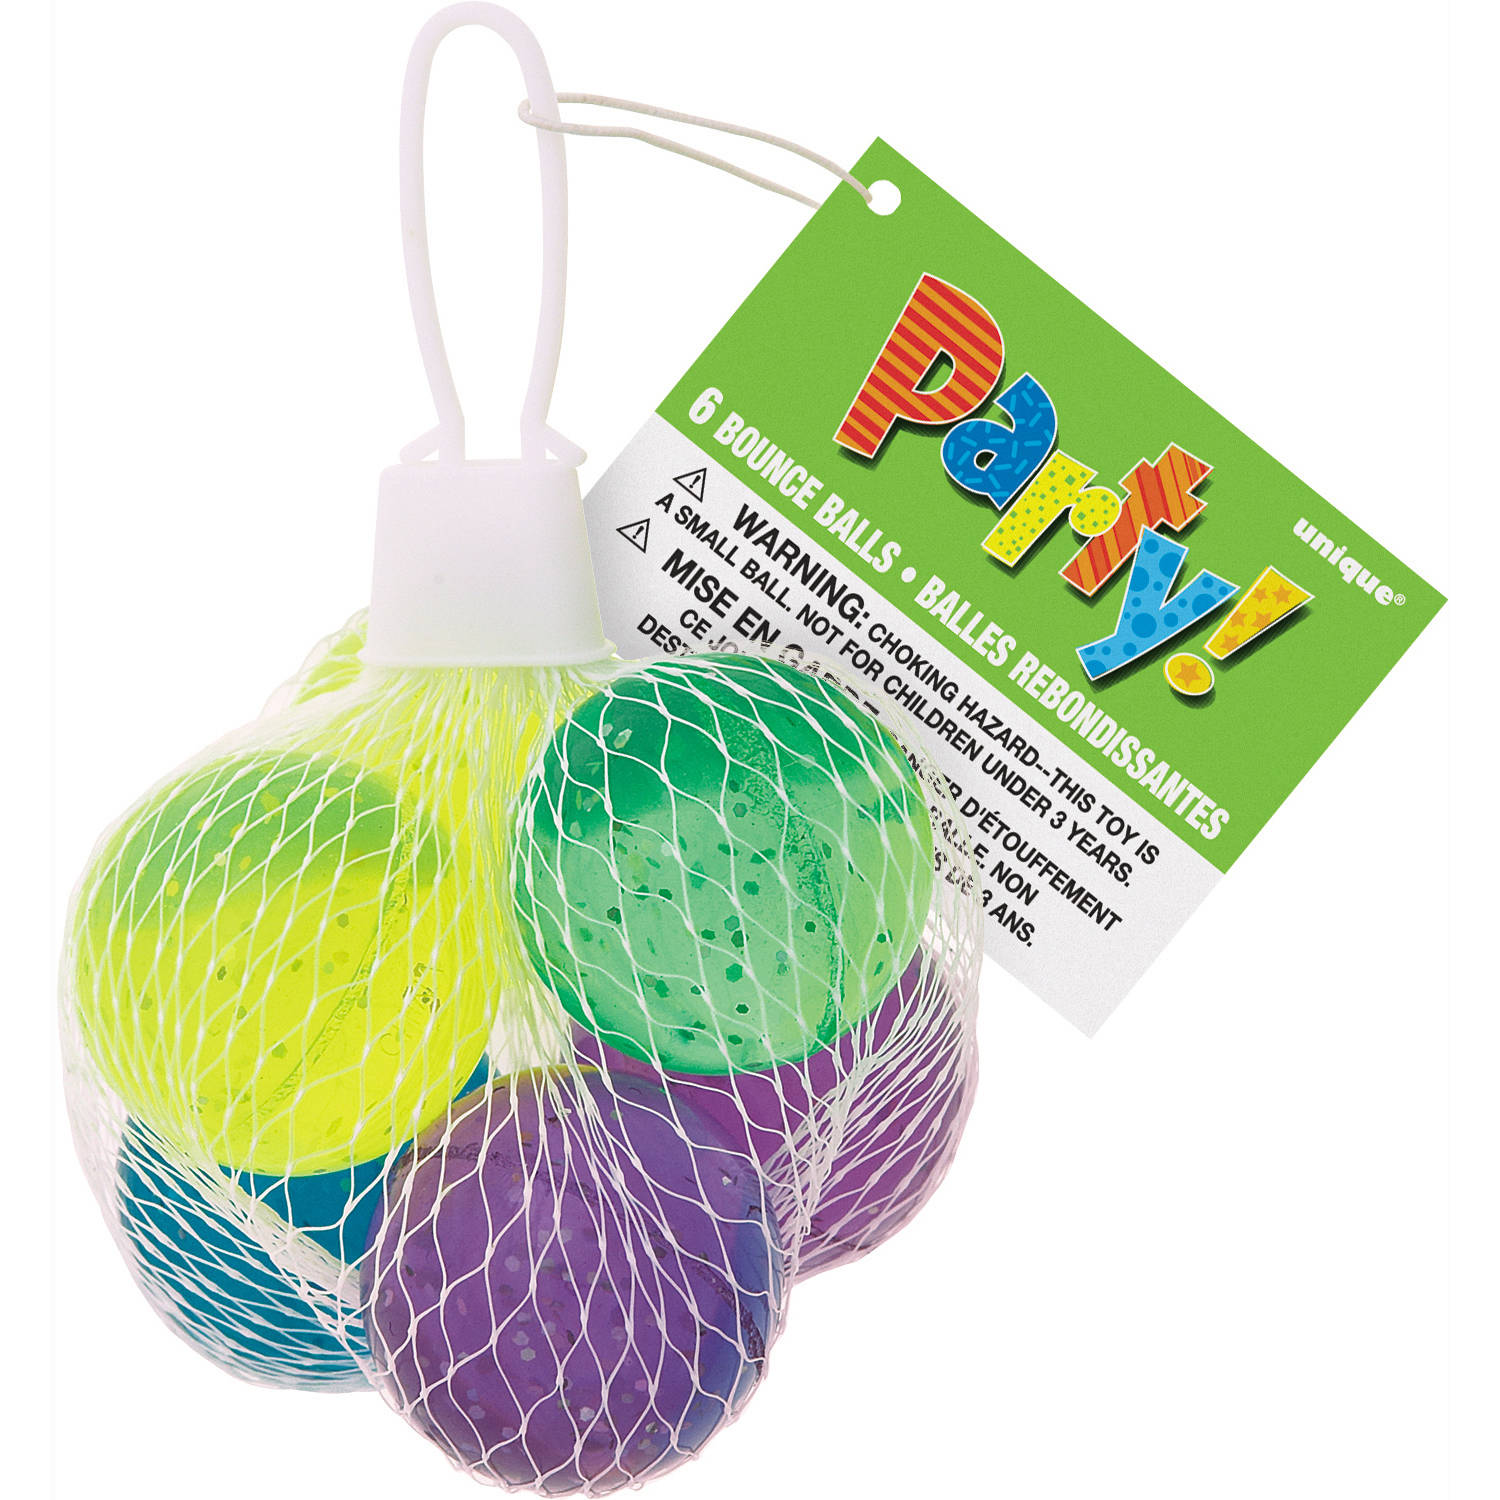 Glitter Bouncy Ball Party Favors, 6-Count